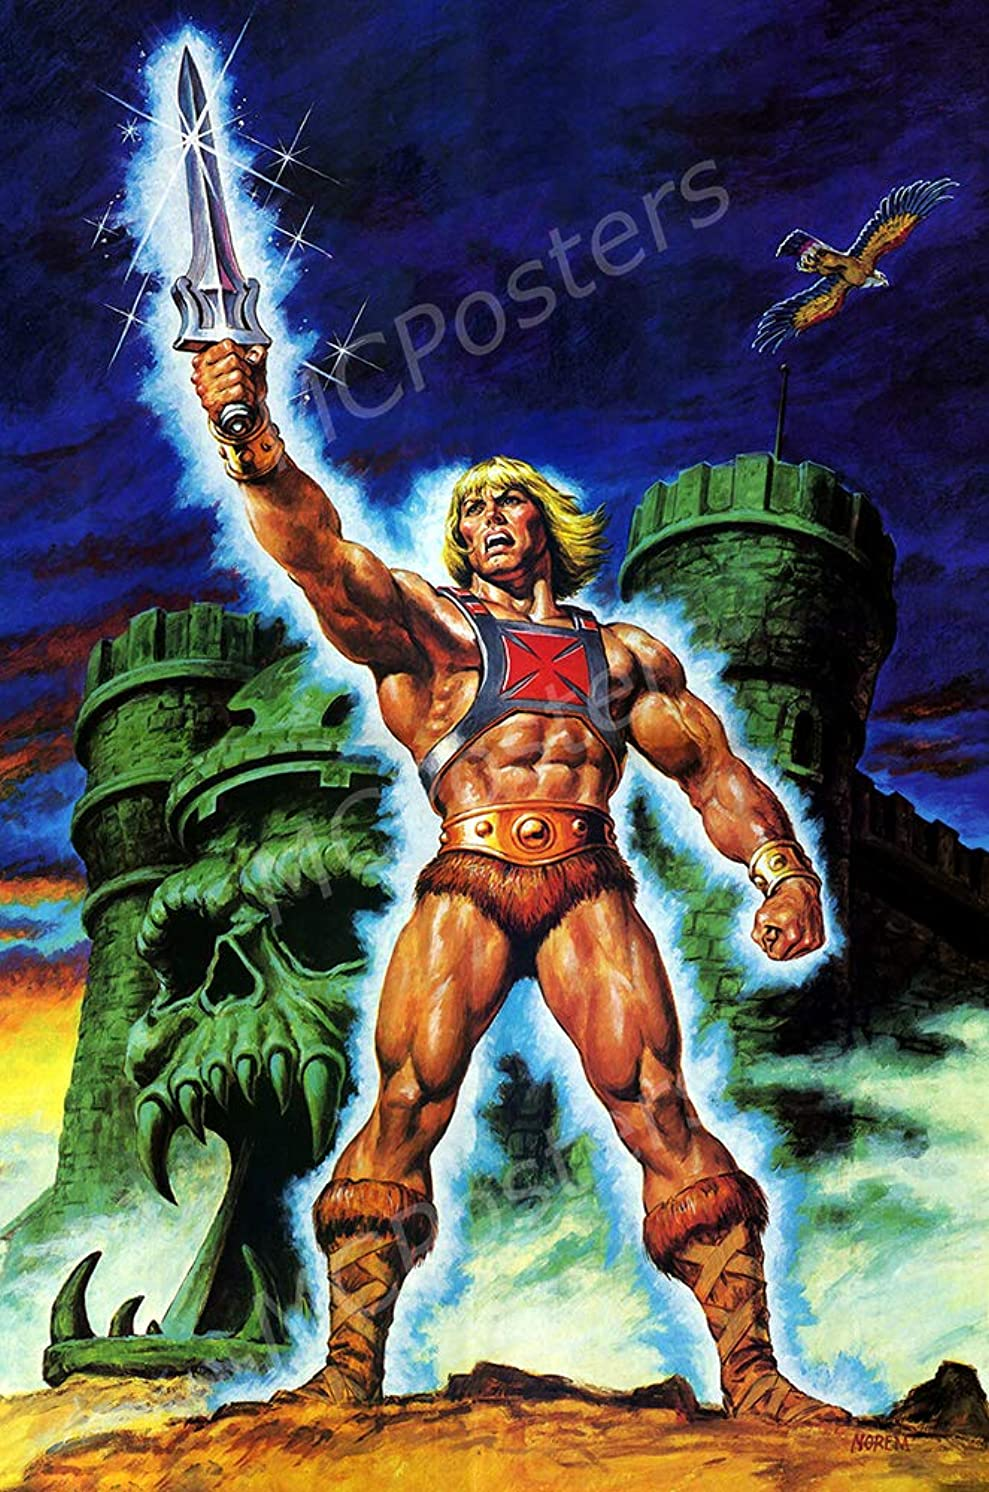 MCPosters - Masters of The Universe He-Man Cartoon TV Show Series Poster Glossy Finish - TVS820 (24